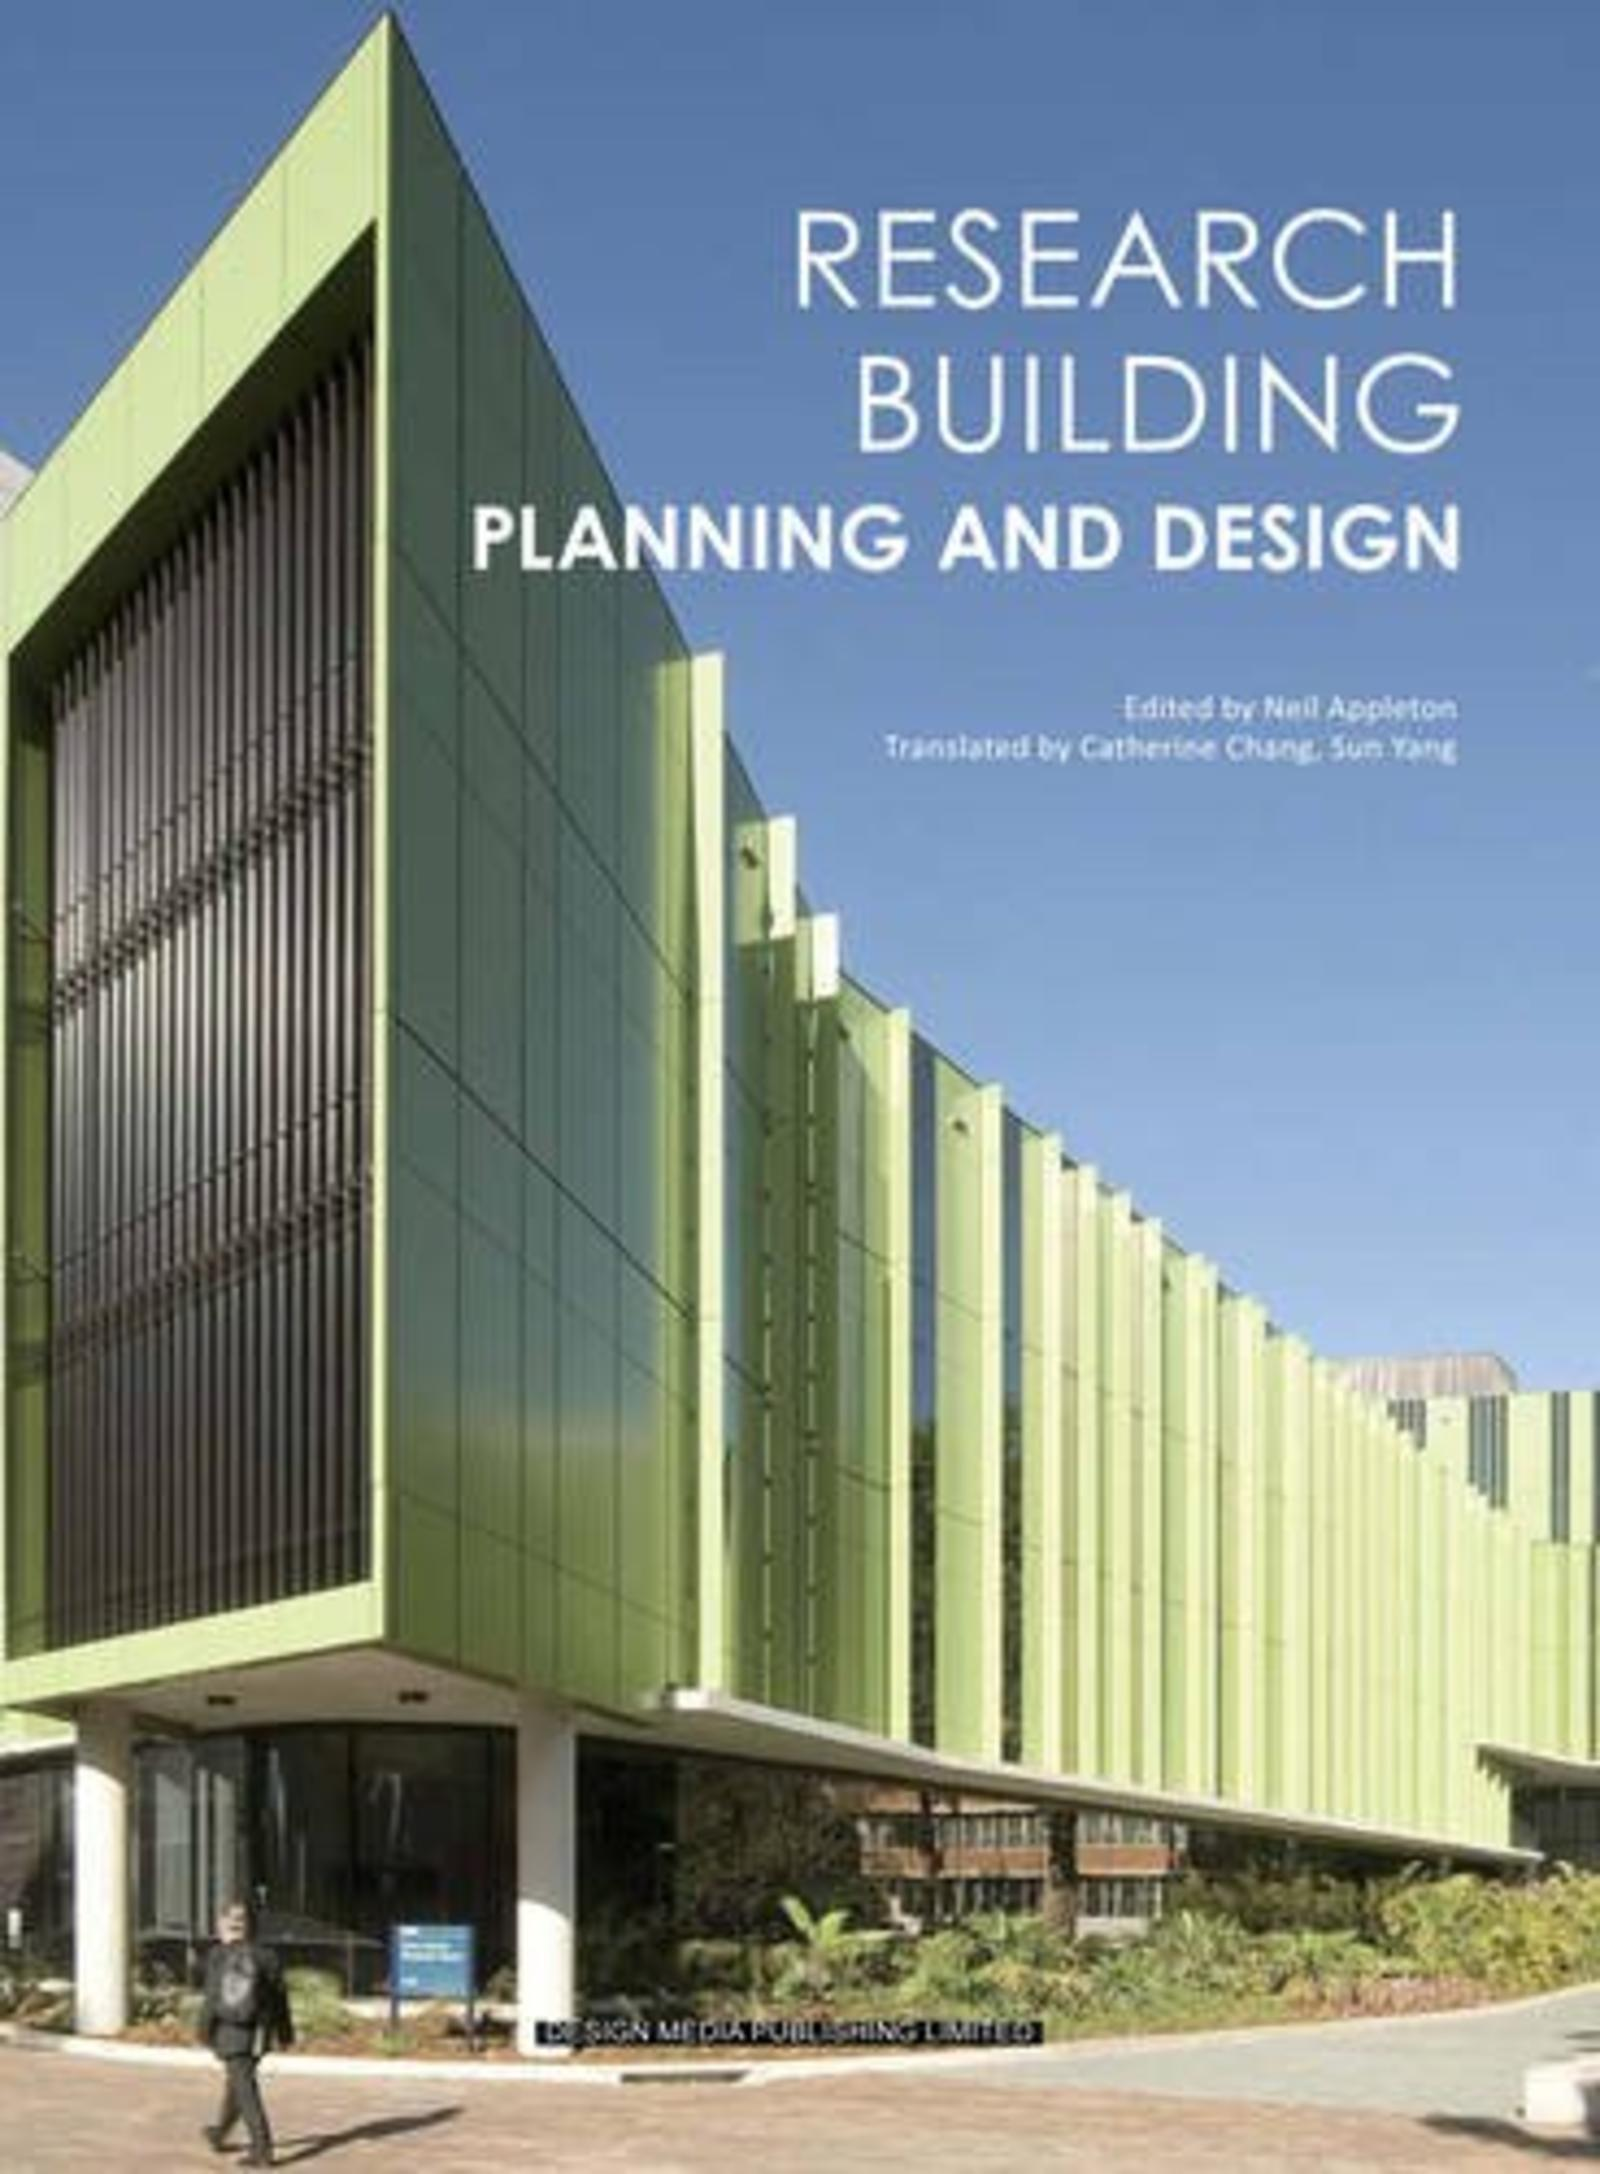 RESEARCH BUILDING - PLANNING AND DESIGN.